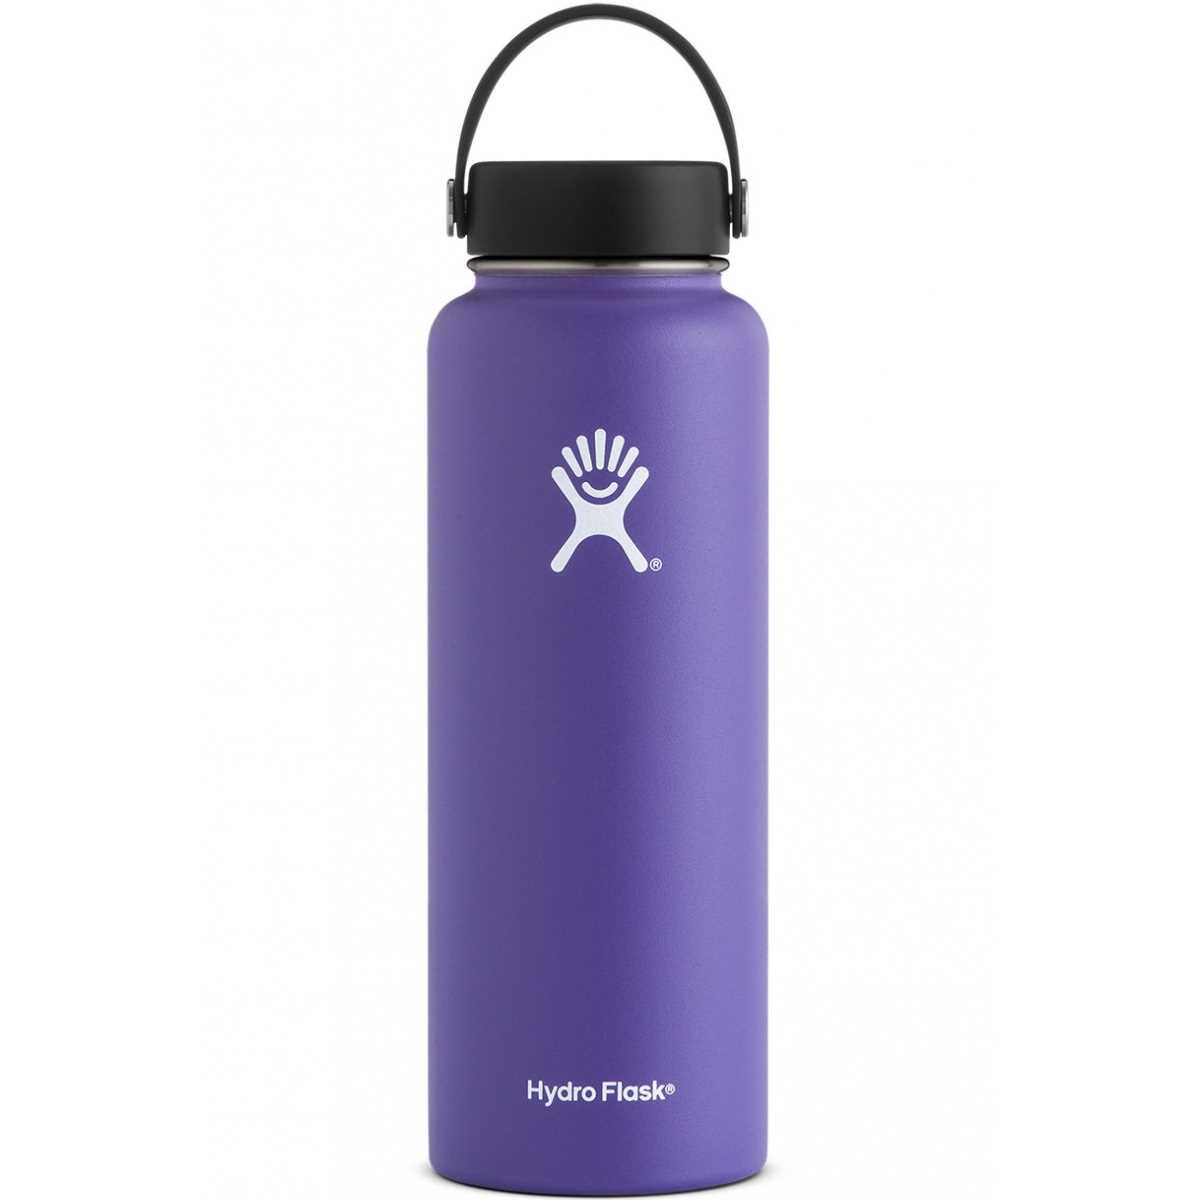 Hydro Flask 40 Oz Wide Mouth Insulated Bottle Plum